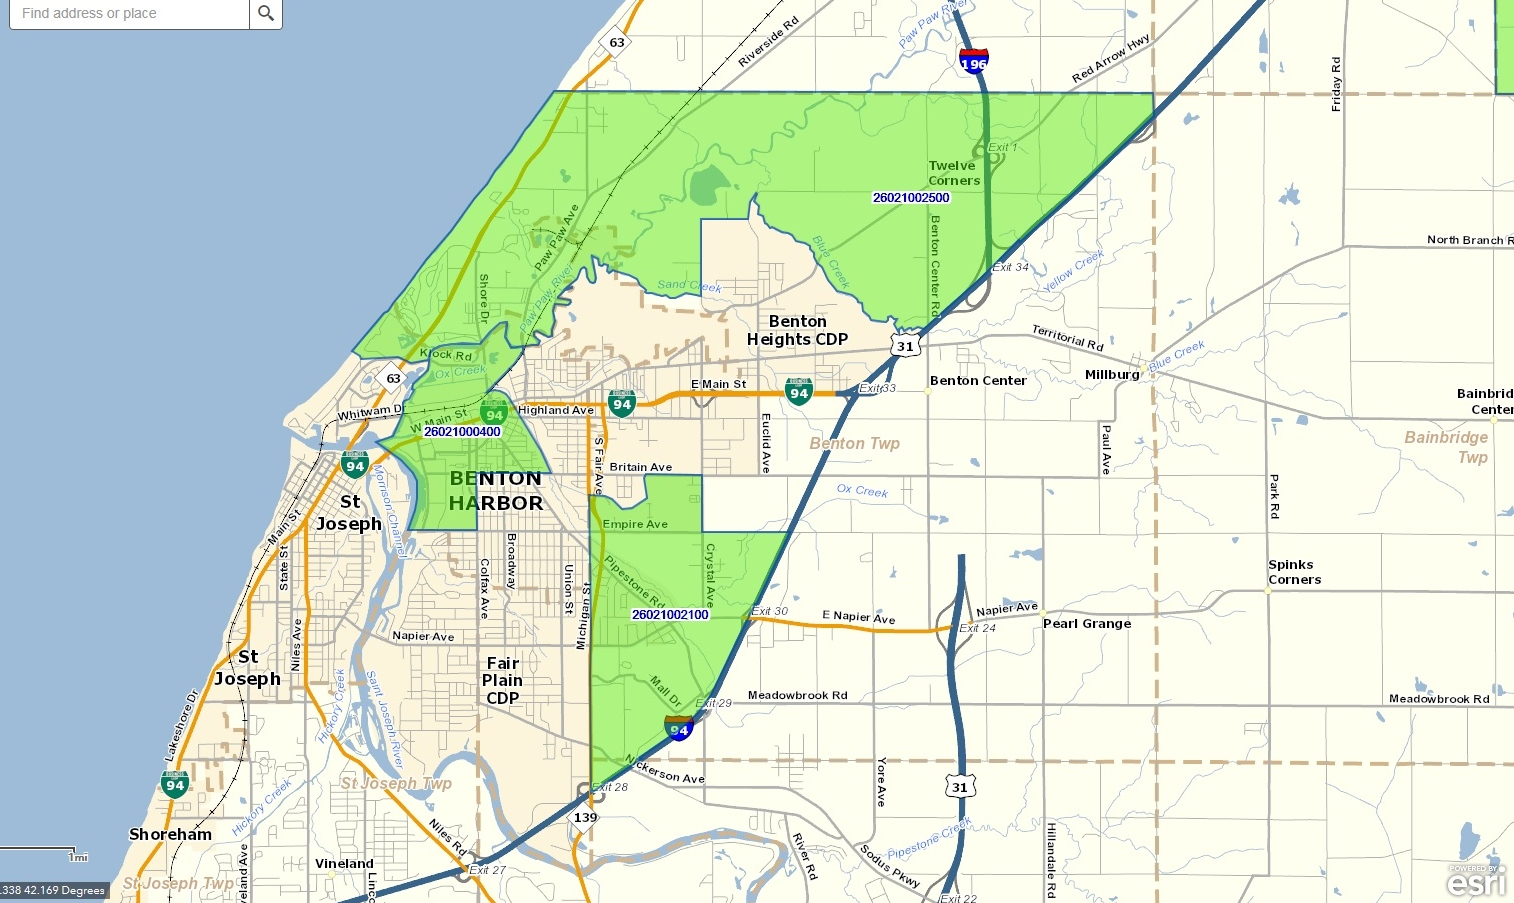 Benton Harbor area Opportunity Zones and Tracts